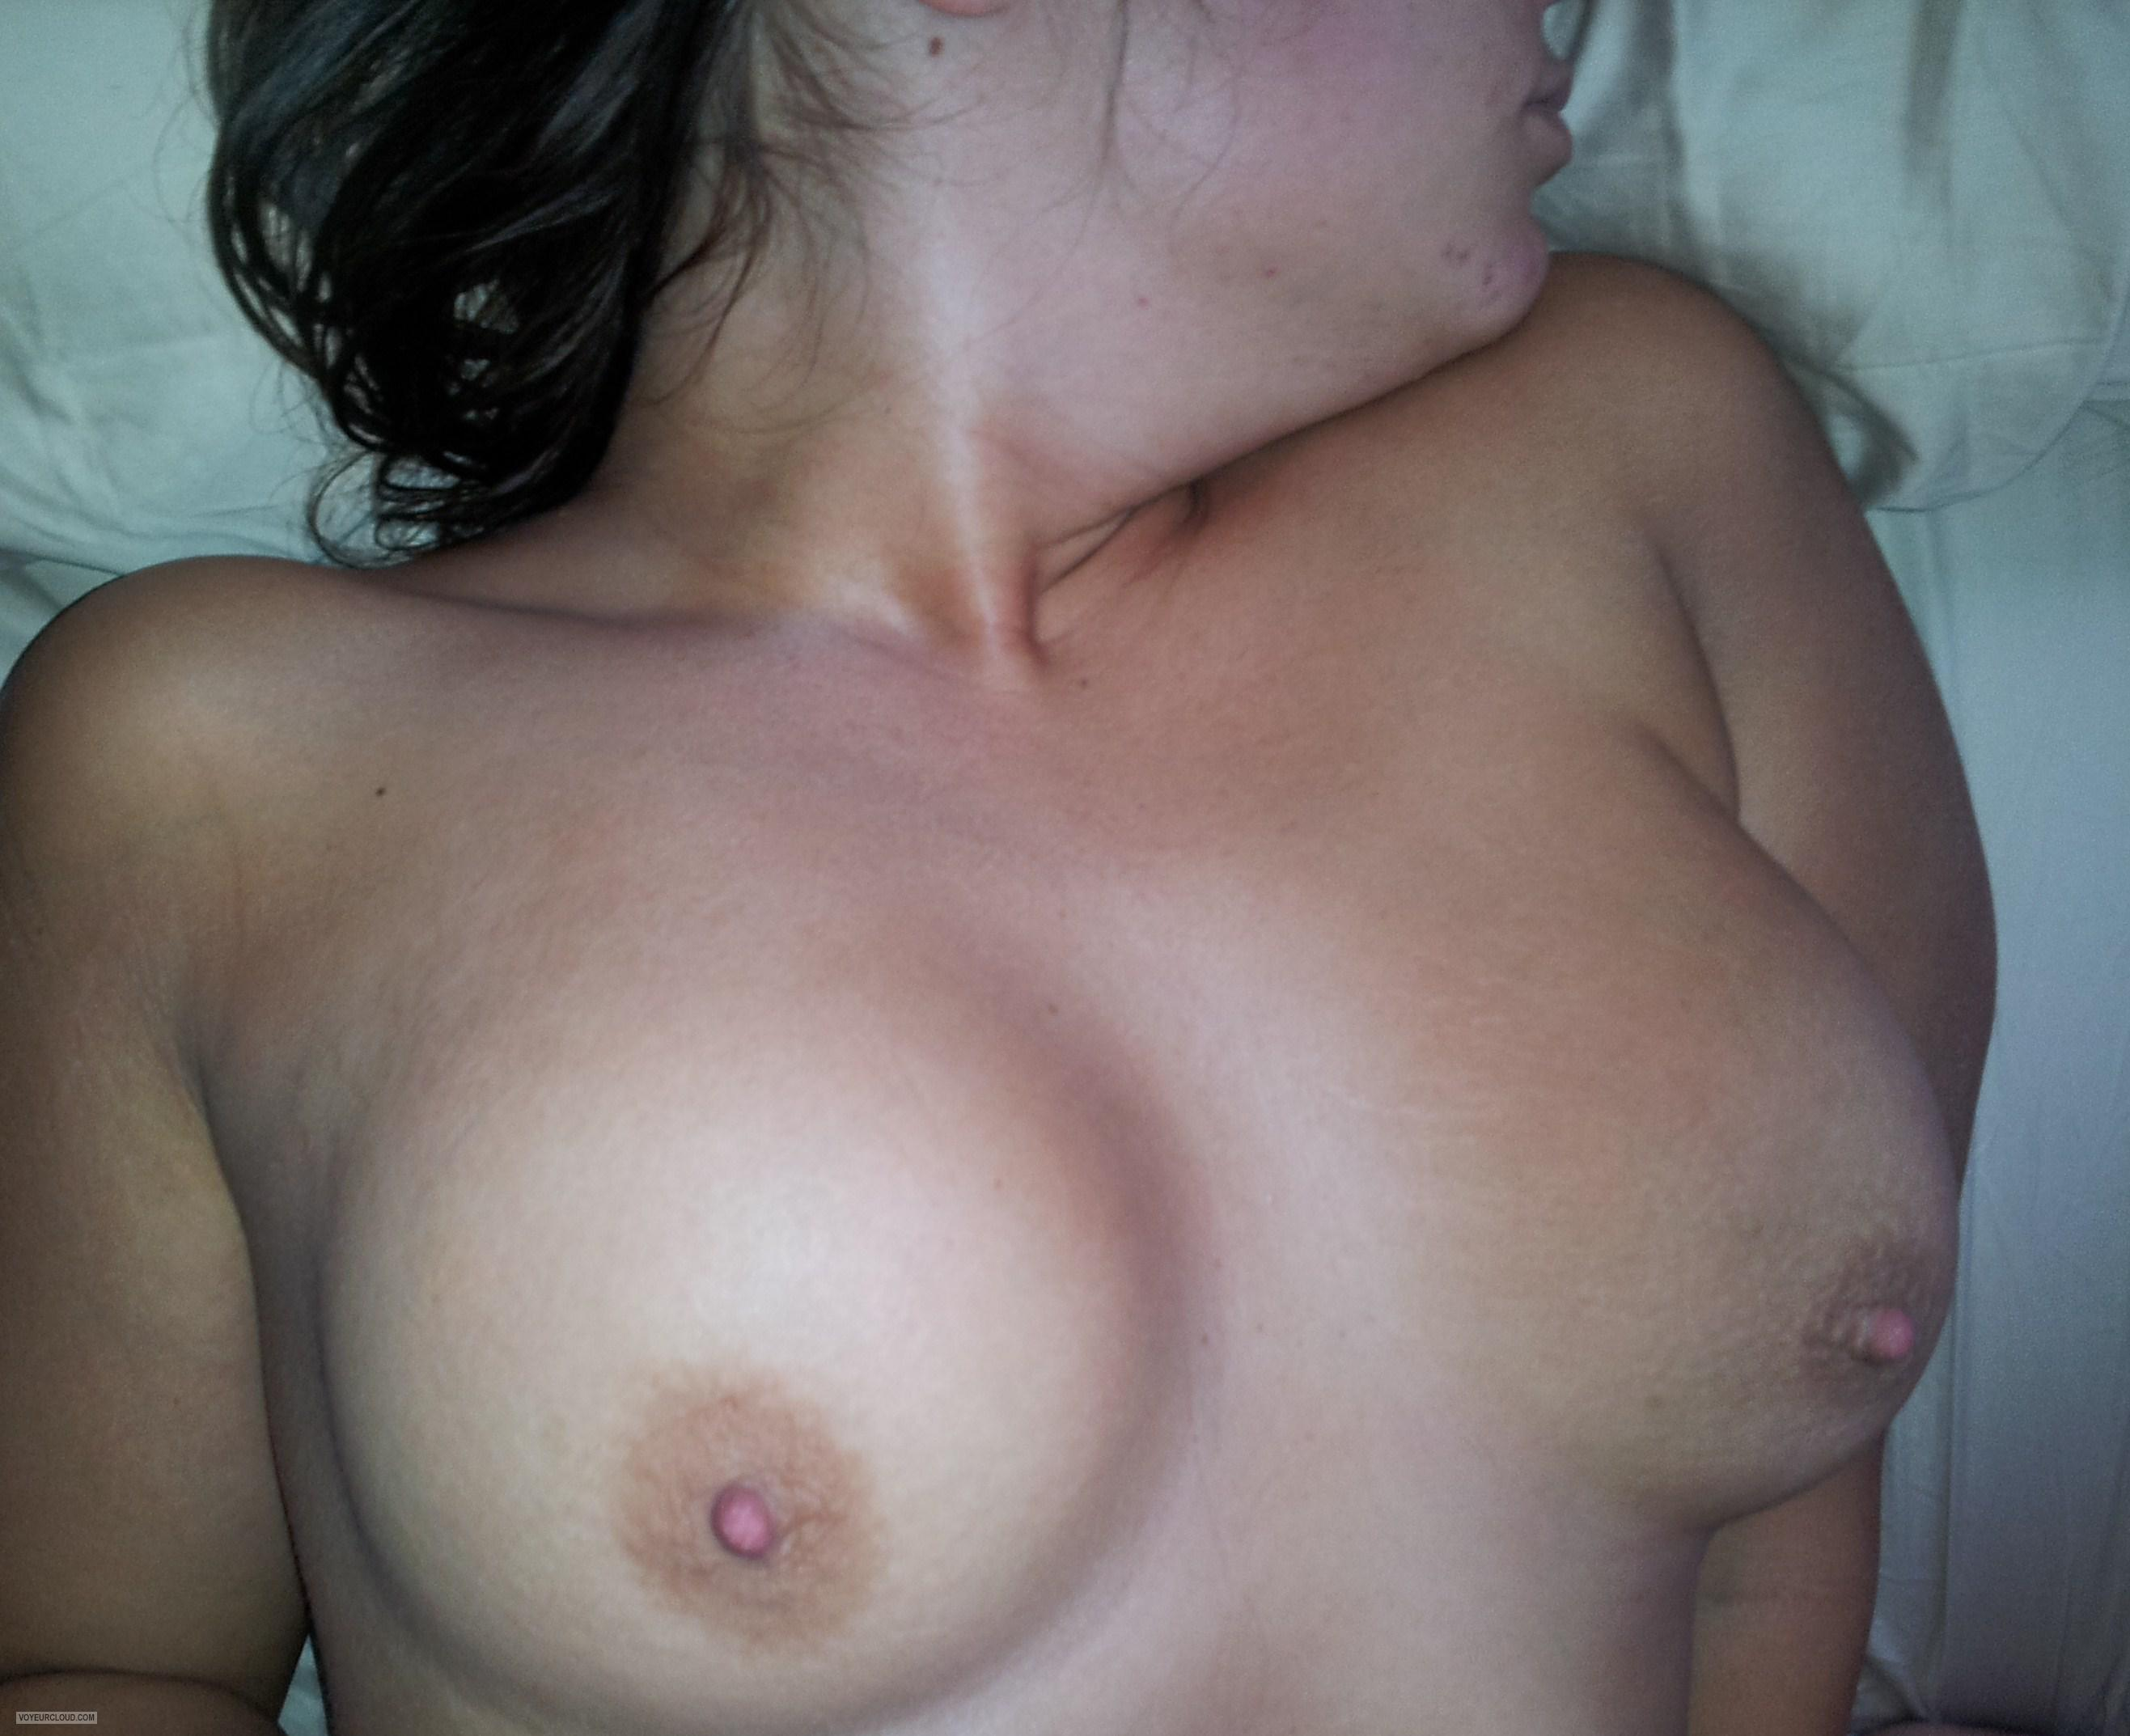 Tit Flash: My Big Tits - Sauri8 from United States